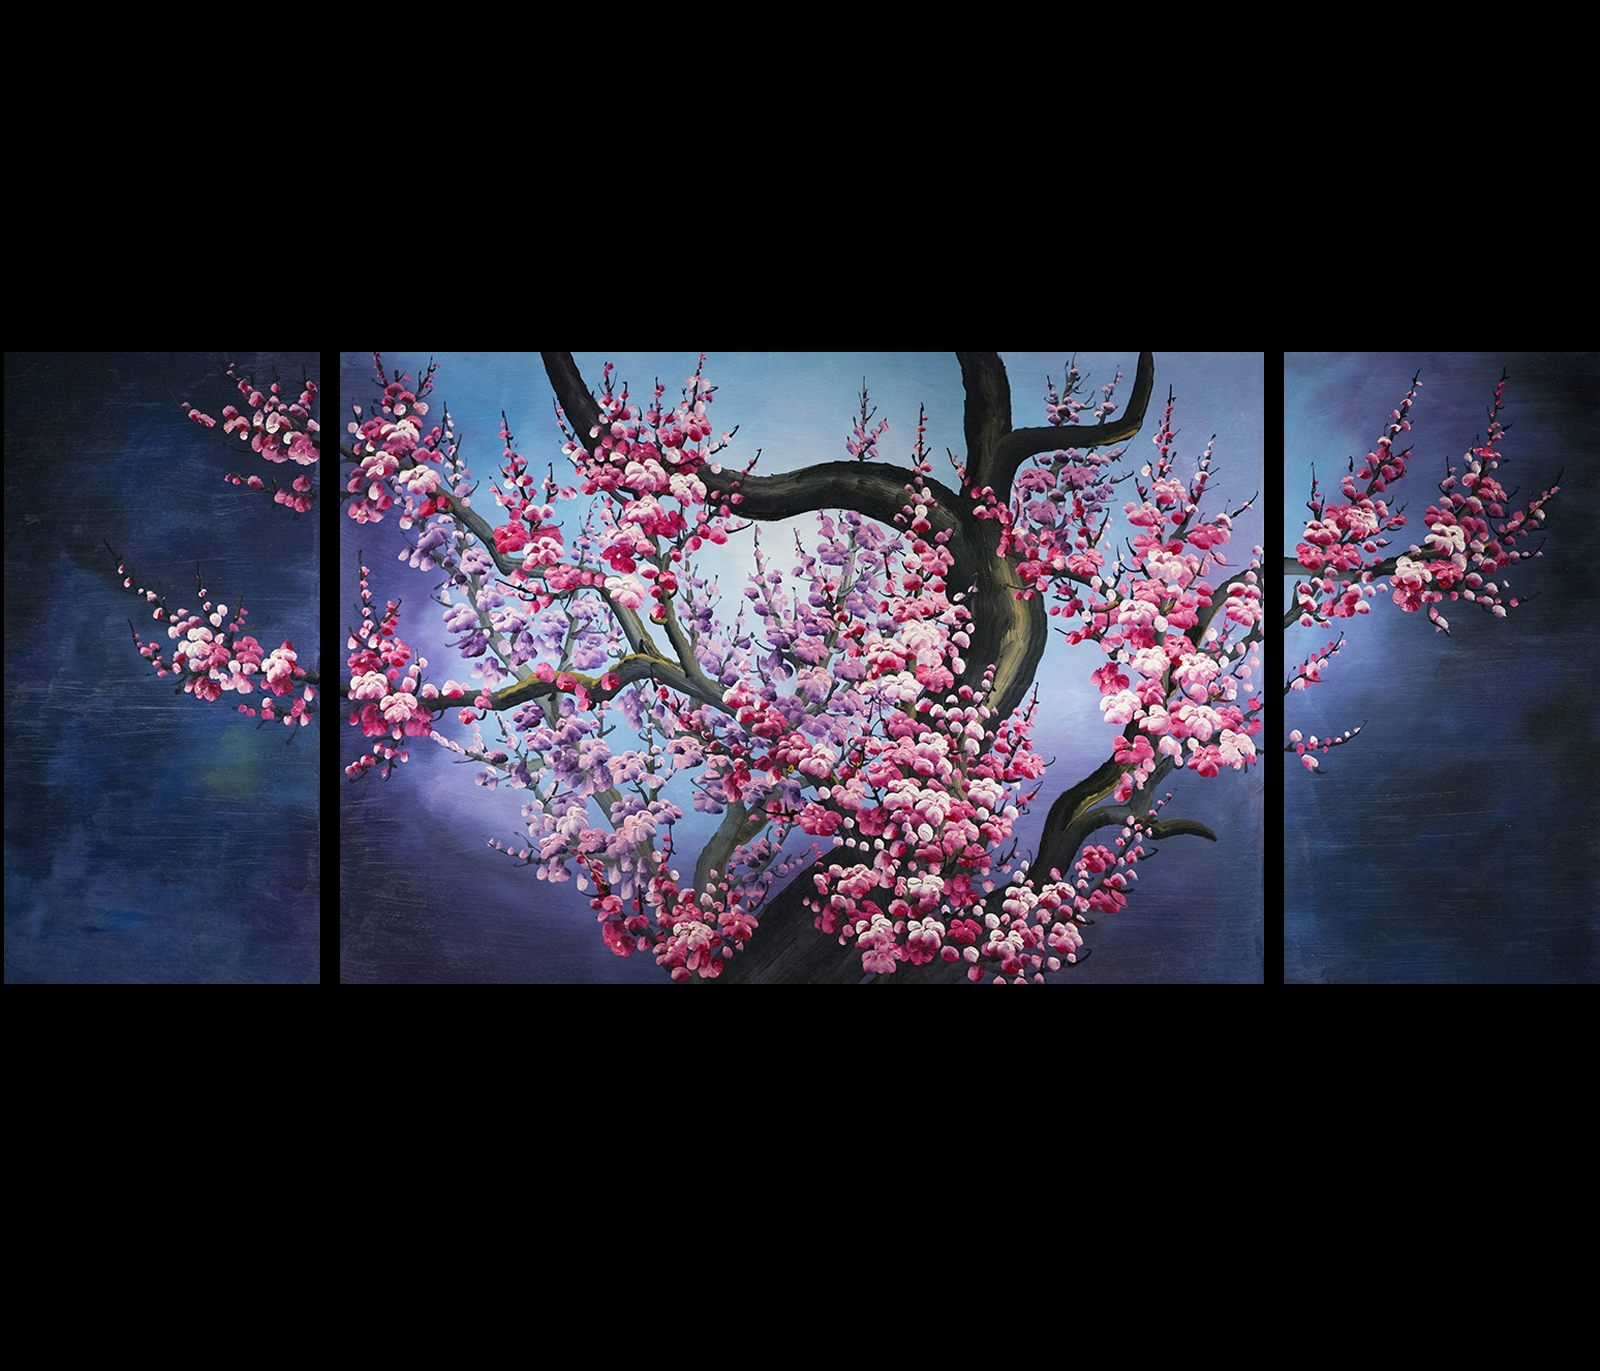 Japanese Cherry Blossom Painting Abstract Art Canvas Wall Art Within 2018 Abstract Cherry Blossom Wall Art (Gallery 2 of 20)